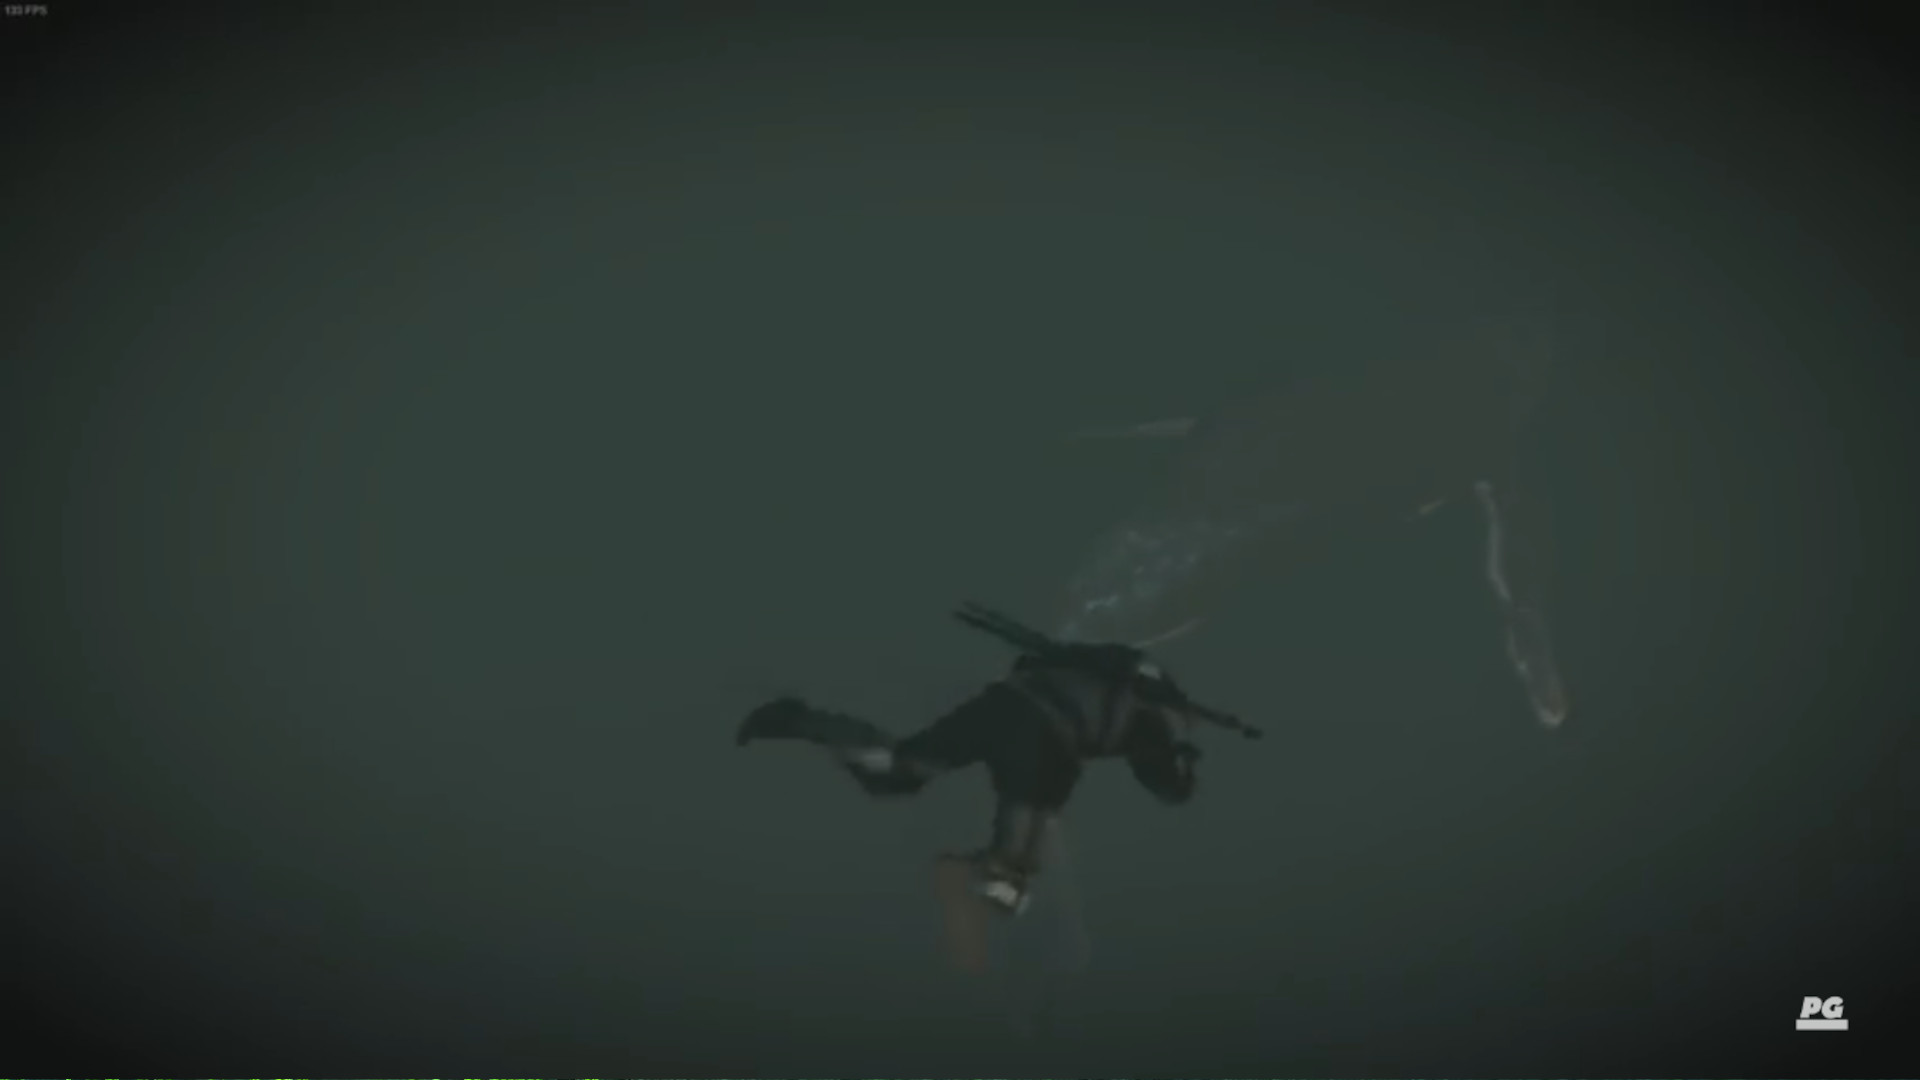 Geralt in The Witcher 3 swimming towards a whale in dark water